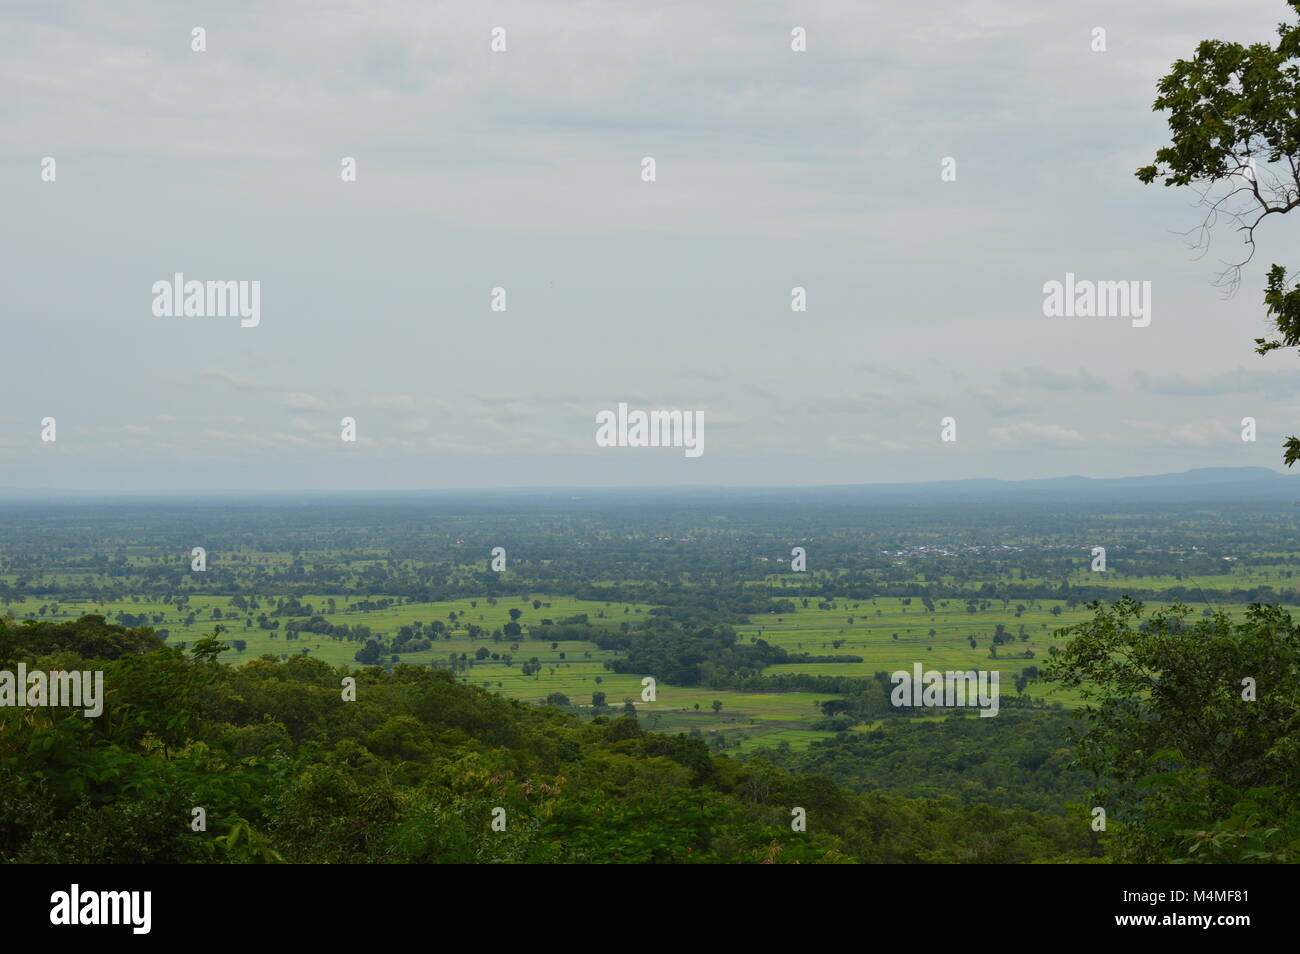 landscape of Thailand cultivate - Stock Image